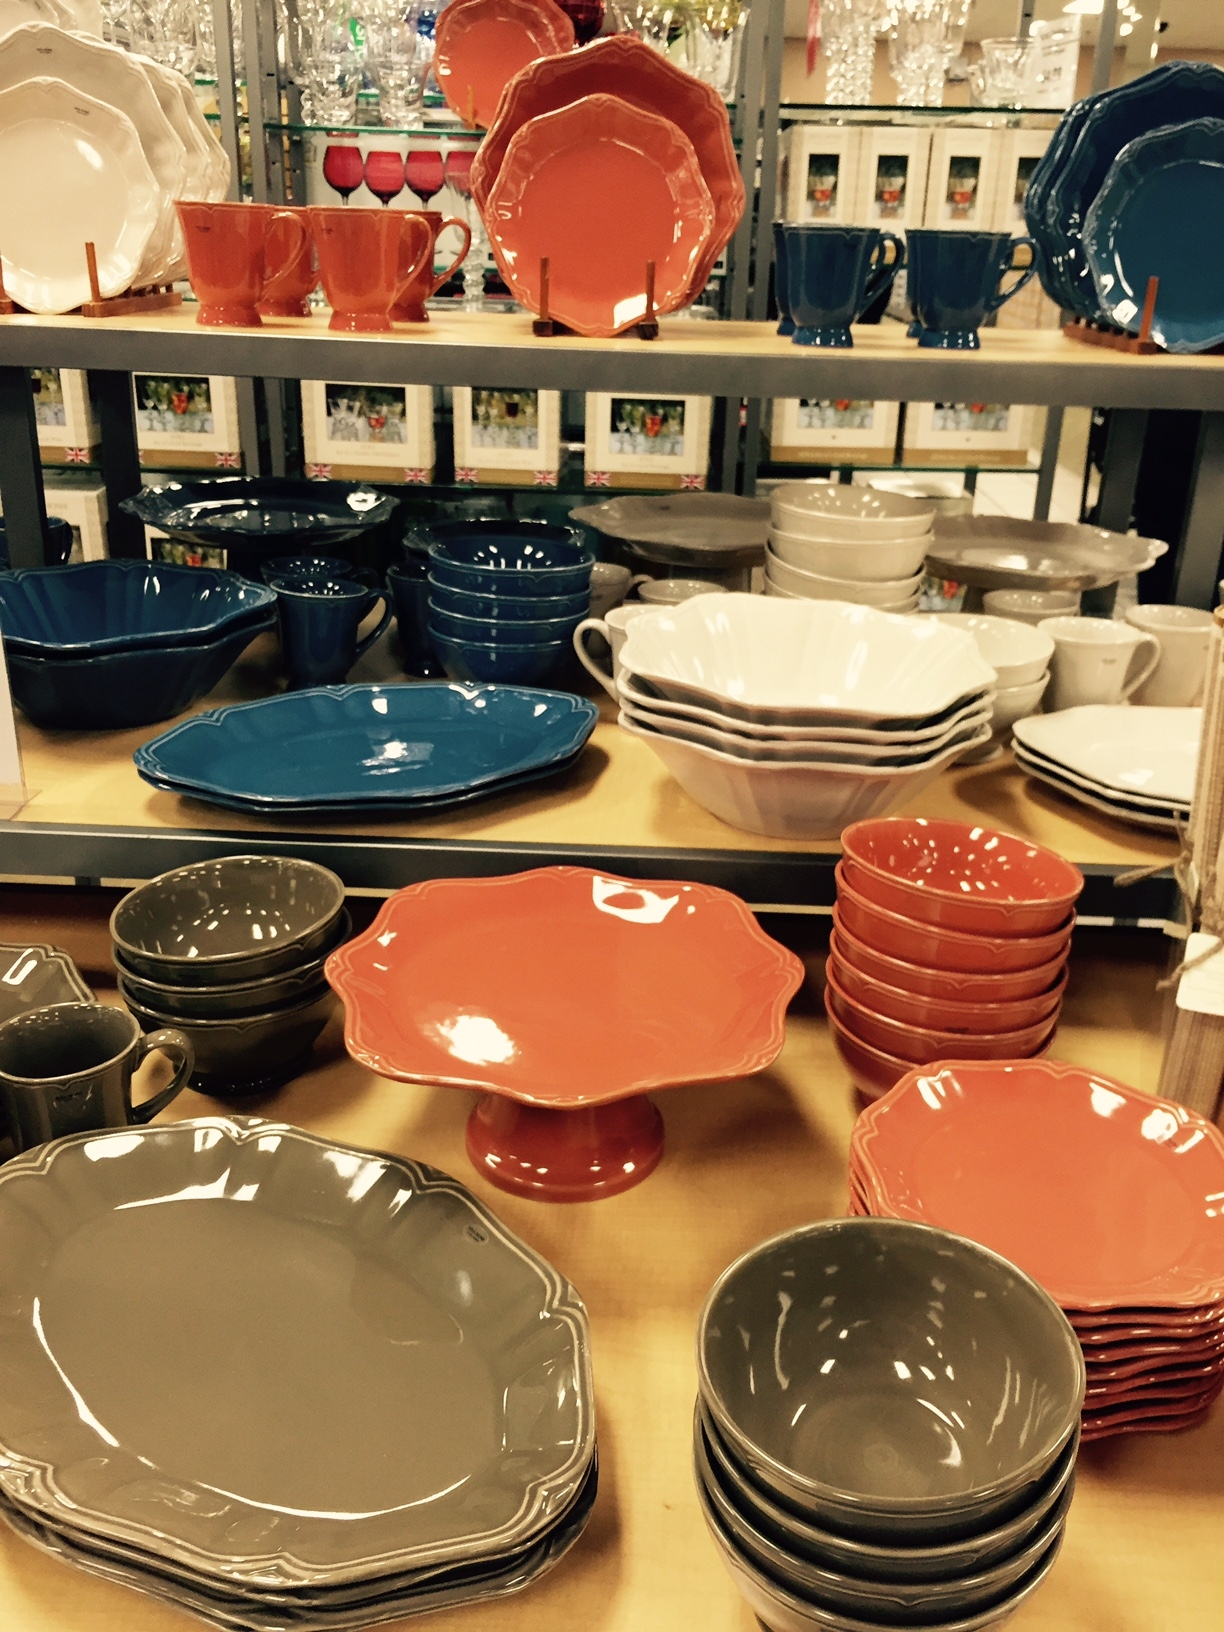 Nina Campbells new home decor collections for Stein Mart April 2015  Home Accents Today